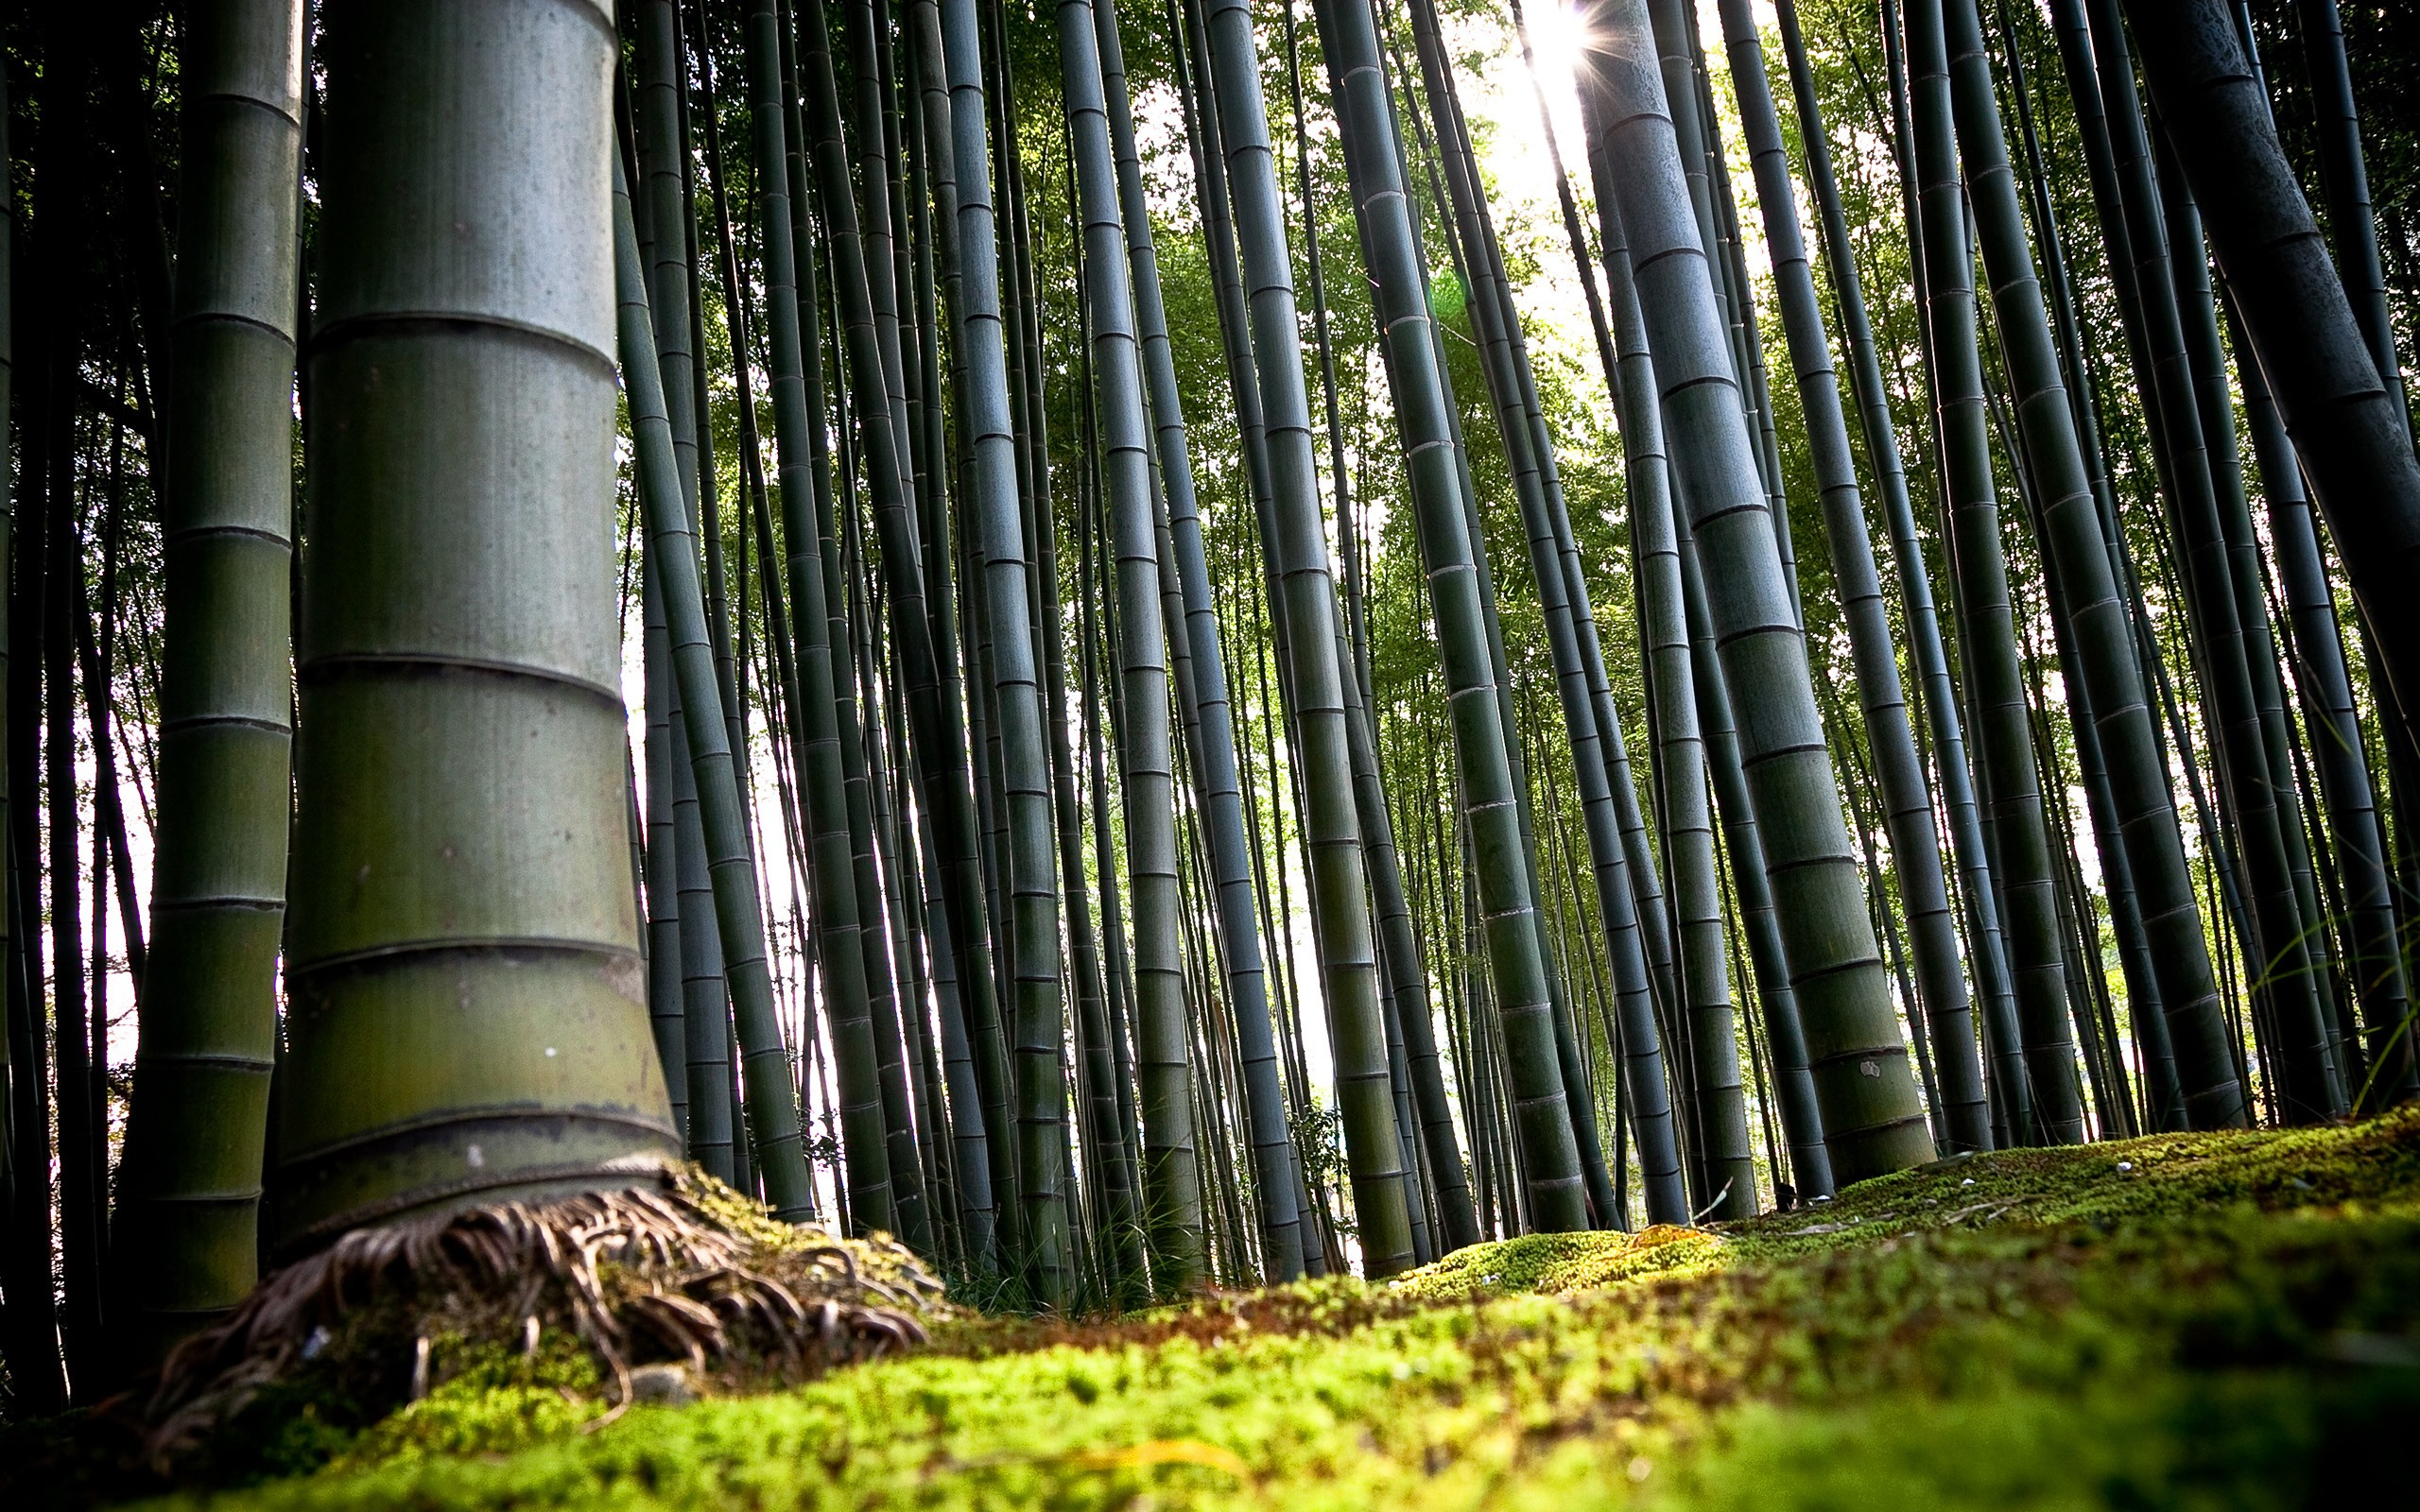 General 2560x1600 nature trees bamboo forest